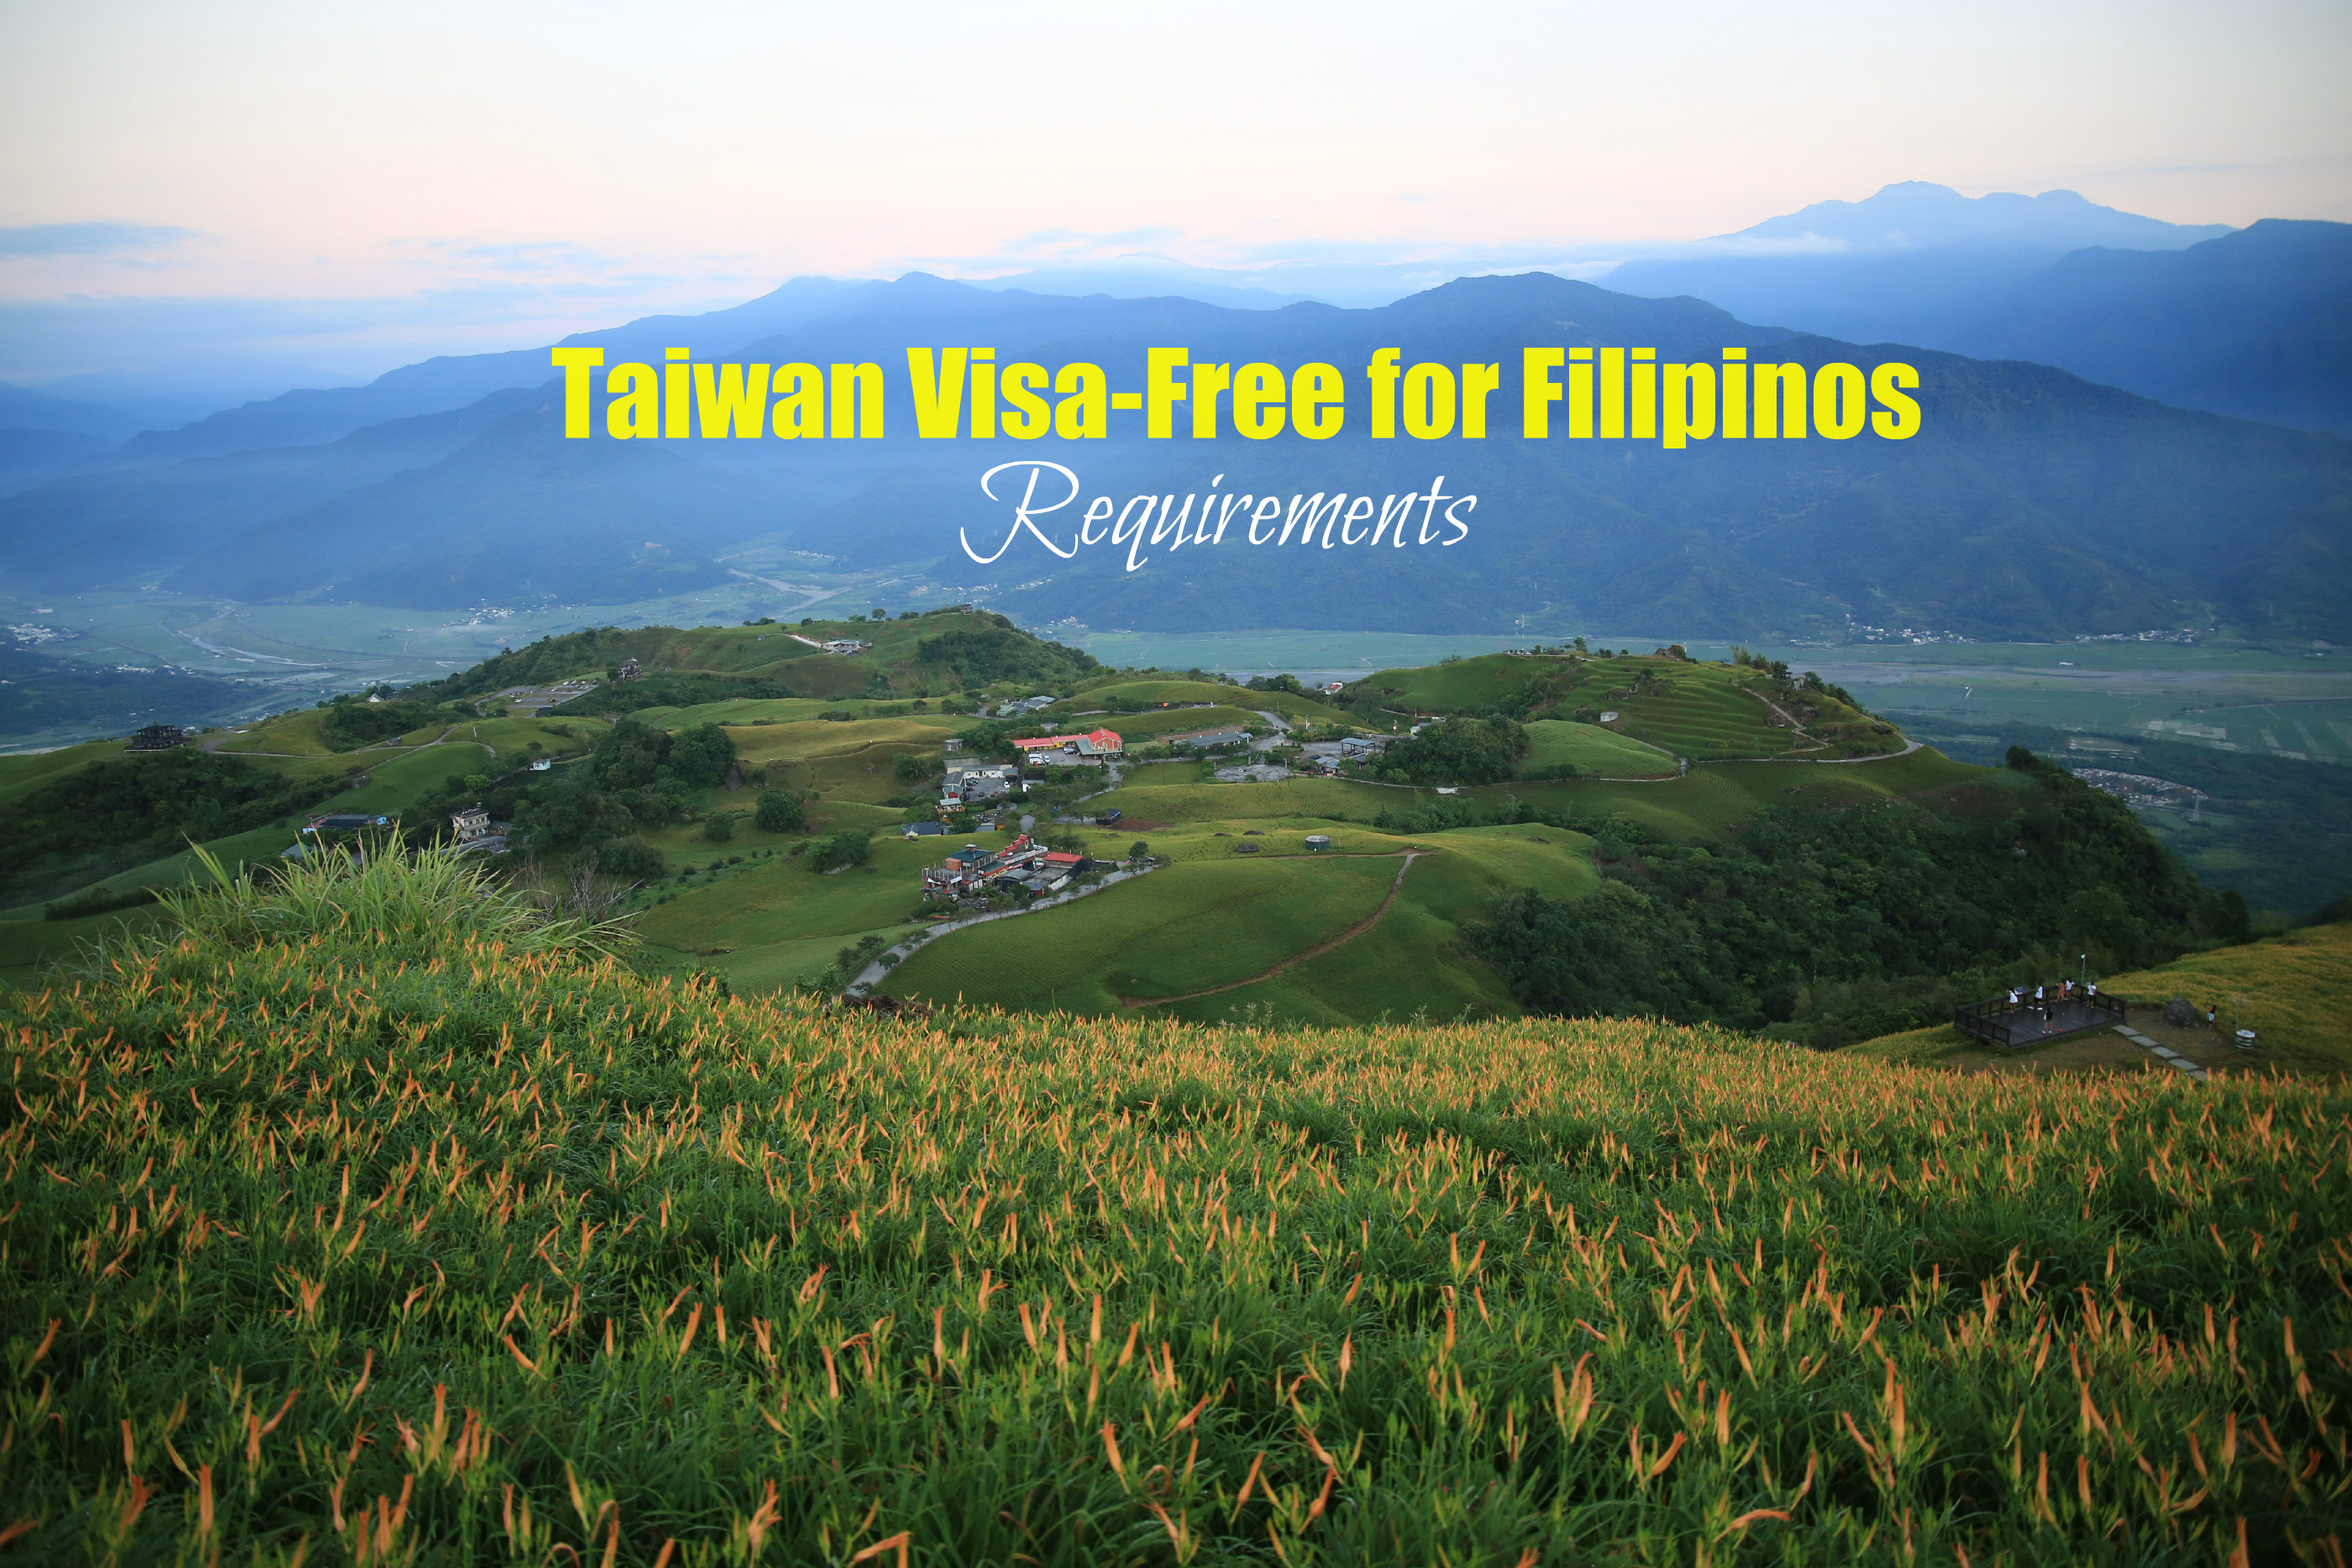 TAIWAN VISA-FREE PHILIPPINES/FILIPINOS 2018 -2019 Requirements